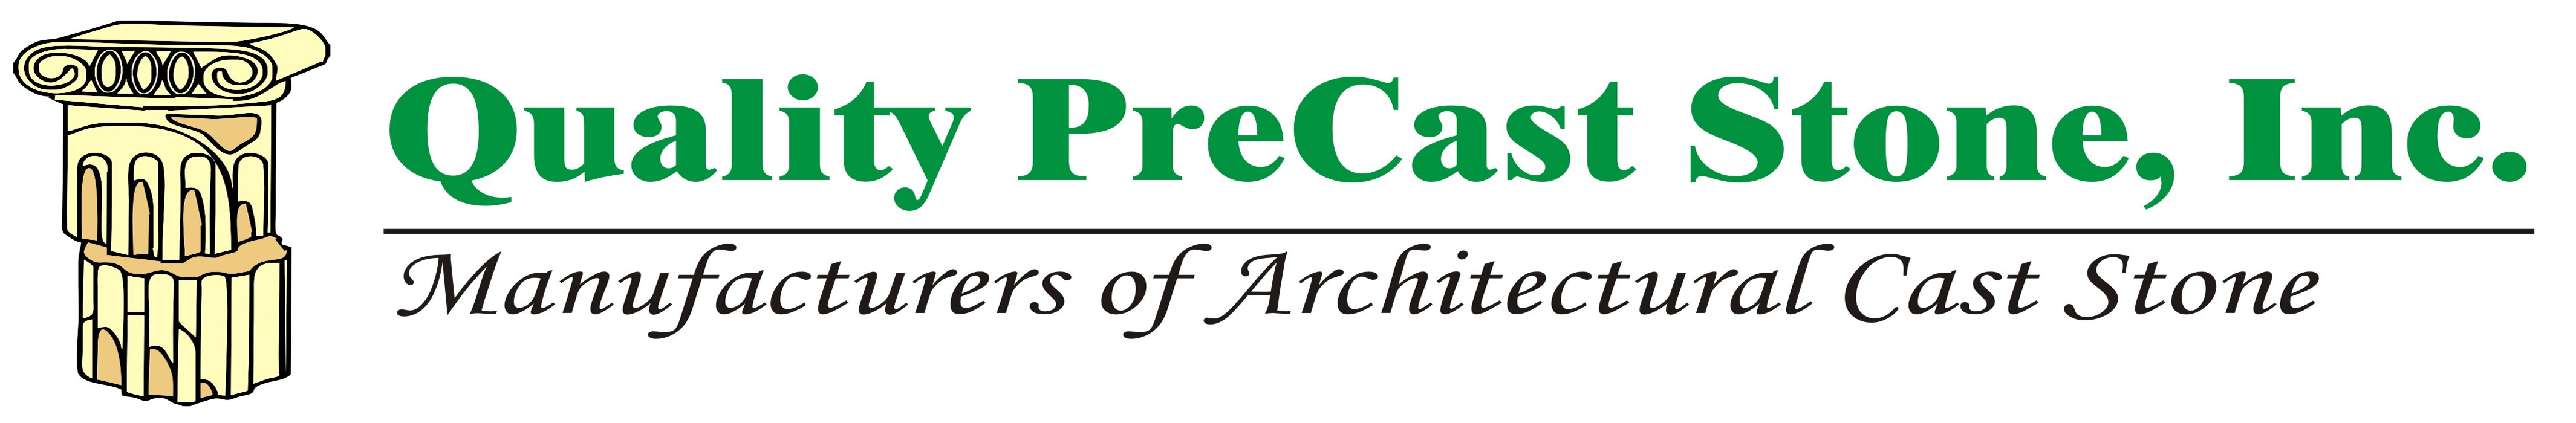 Quality Precast Stone, Manufacturers of Architectural Cast Stone